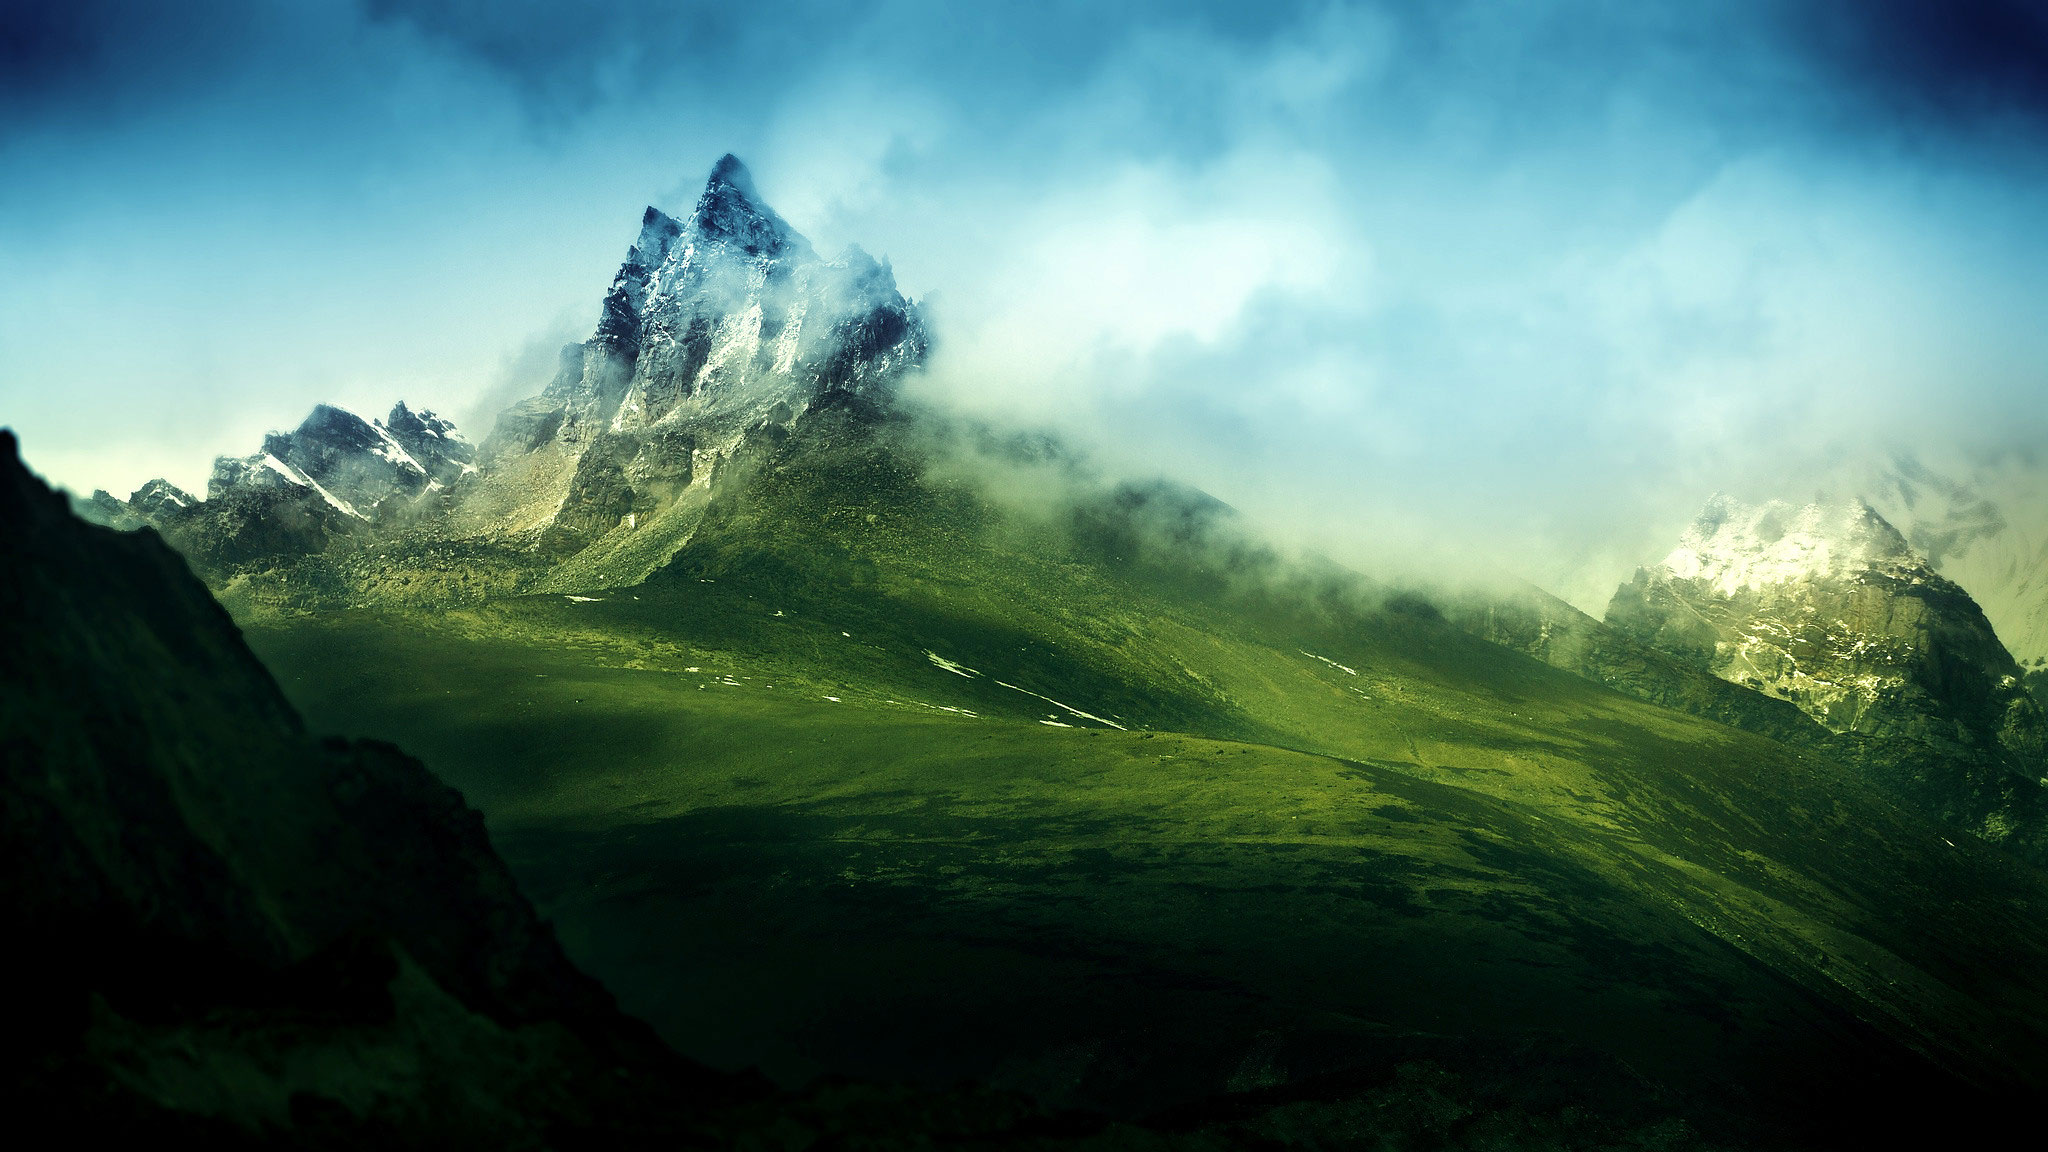 Wallpapers   Green Misty Mountains 2048x1152 wallpaper 2048x1152